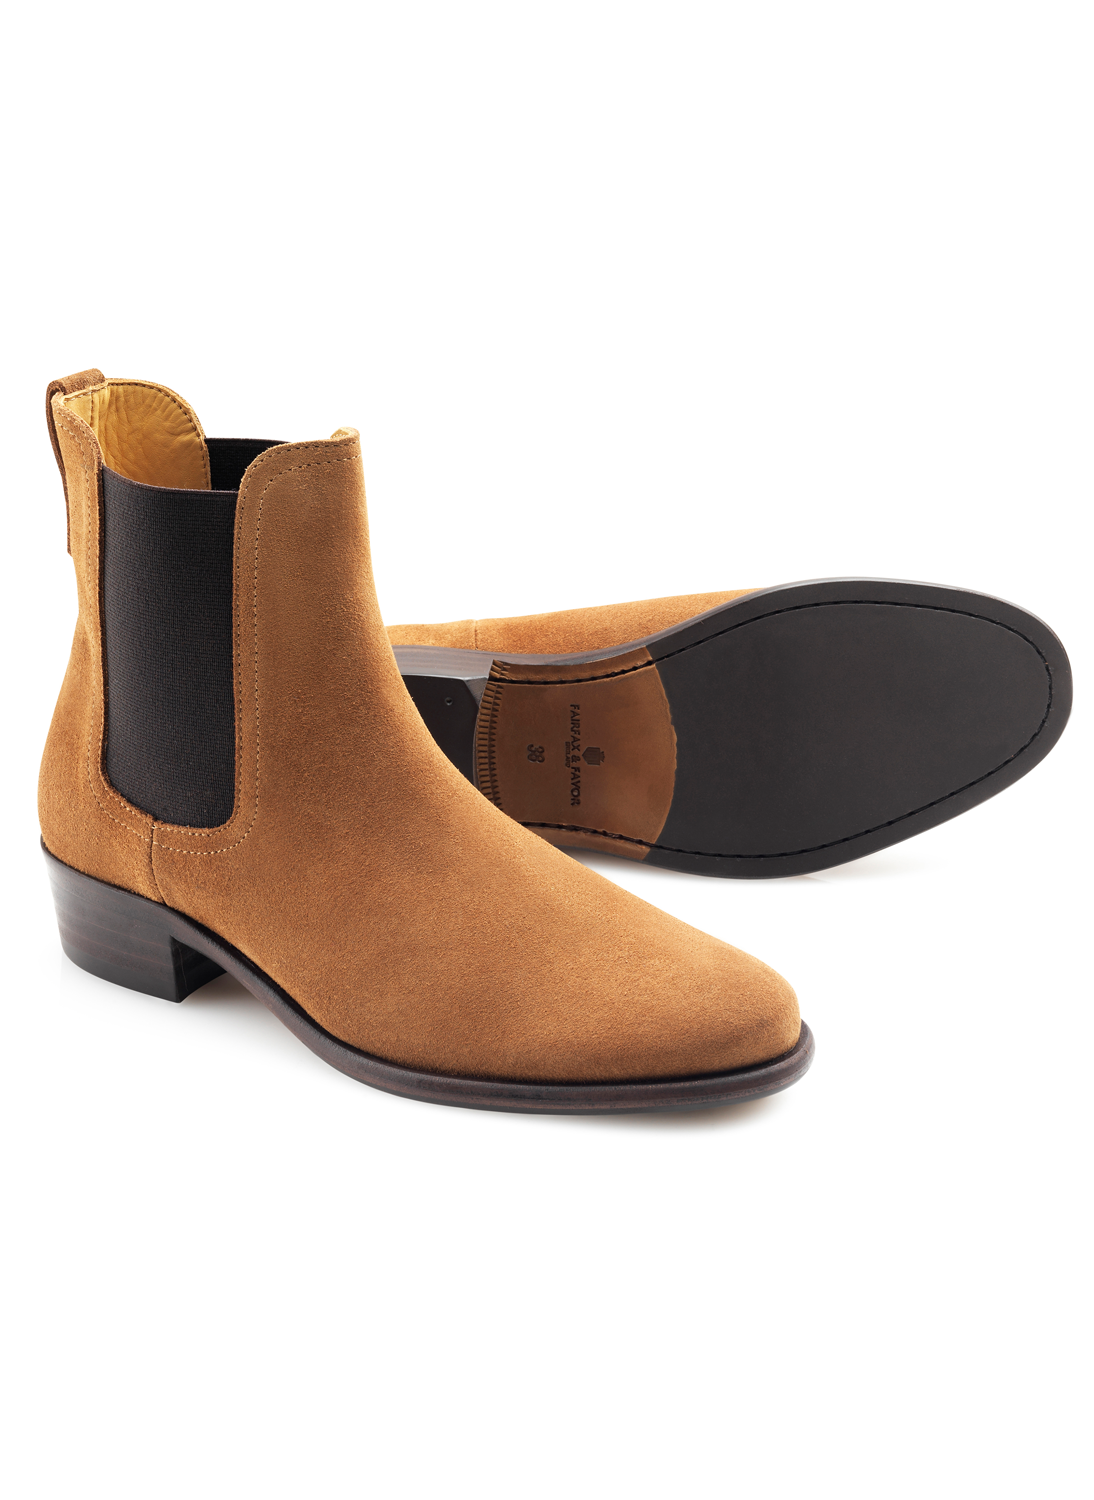 Fairfax And Favor Mens Shoes